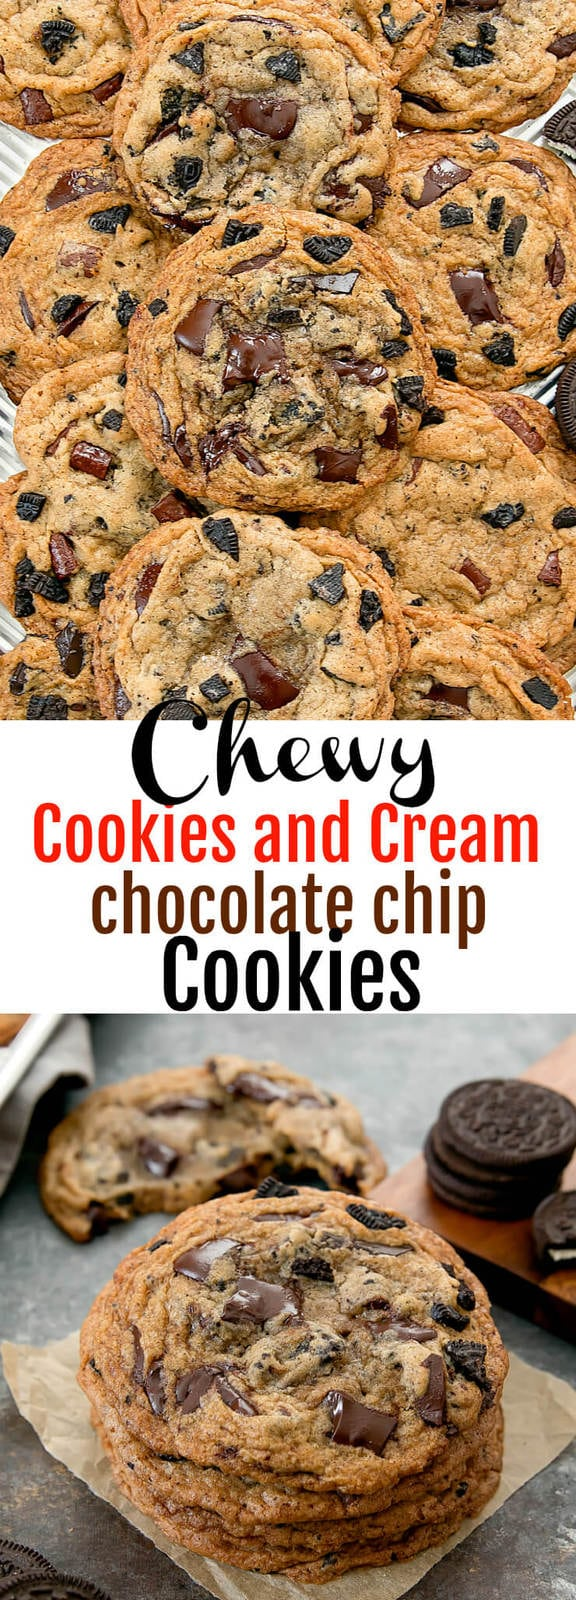 Chewy Cookies and Cream Chocolate Chip Cookies. Thin and chewy cookies with crispy edges, studded with crushed Oreos and chocolate chunks.